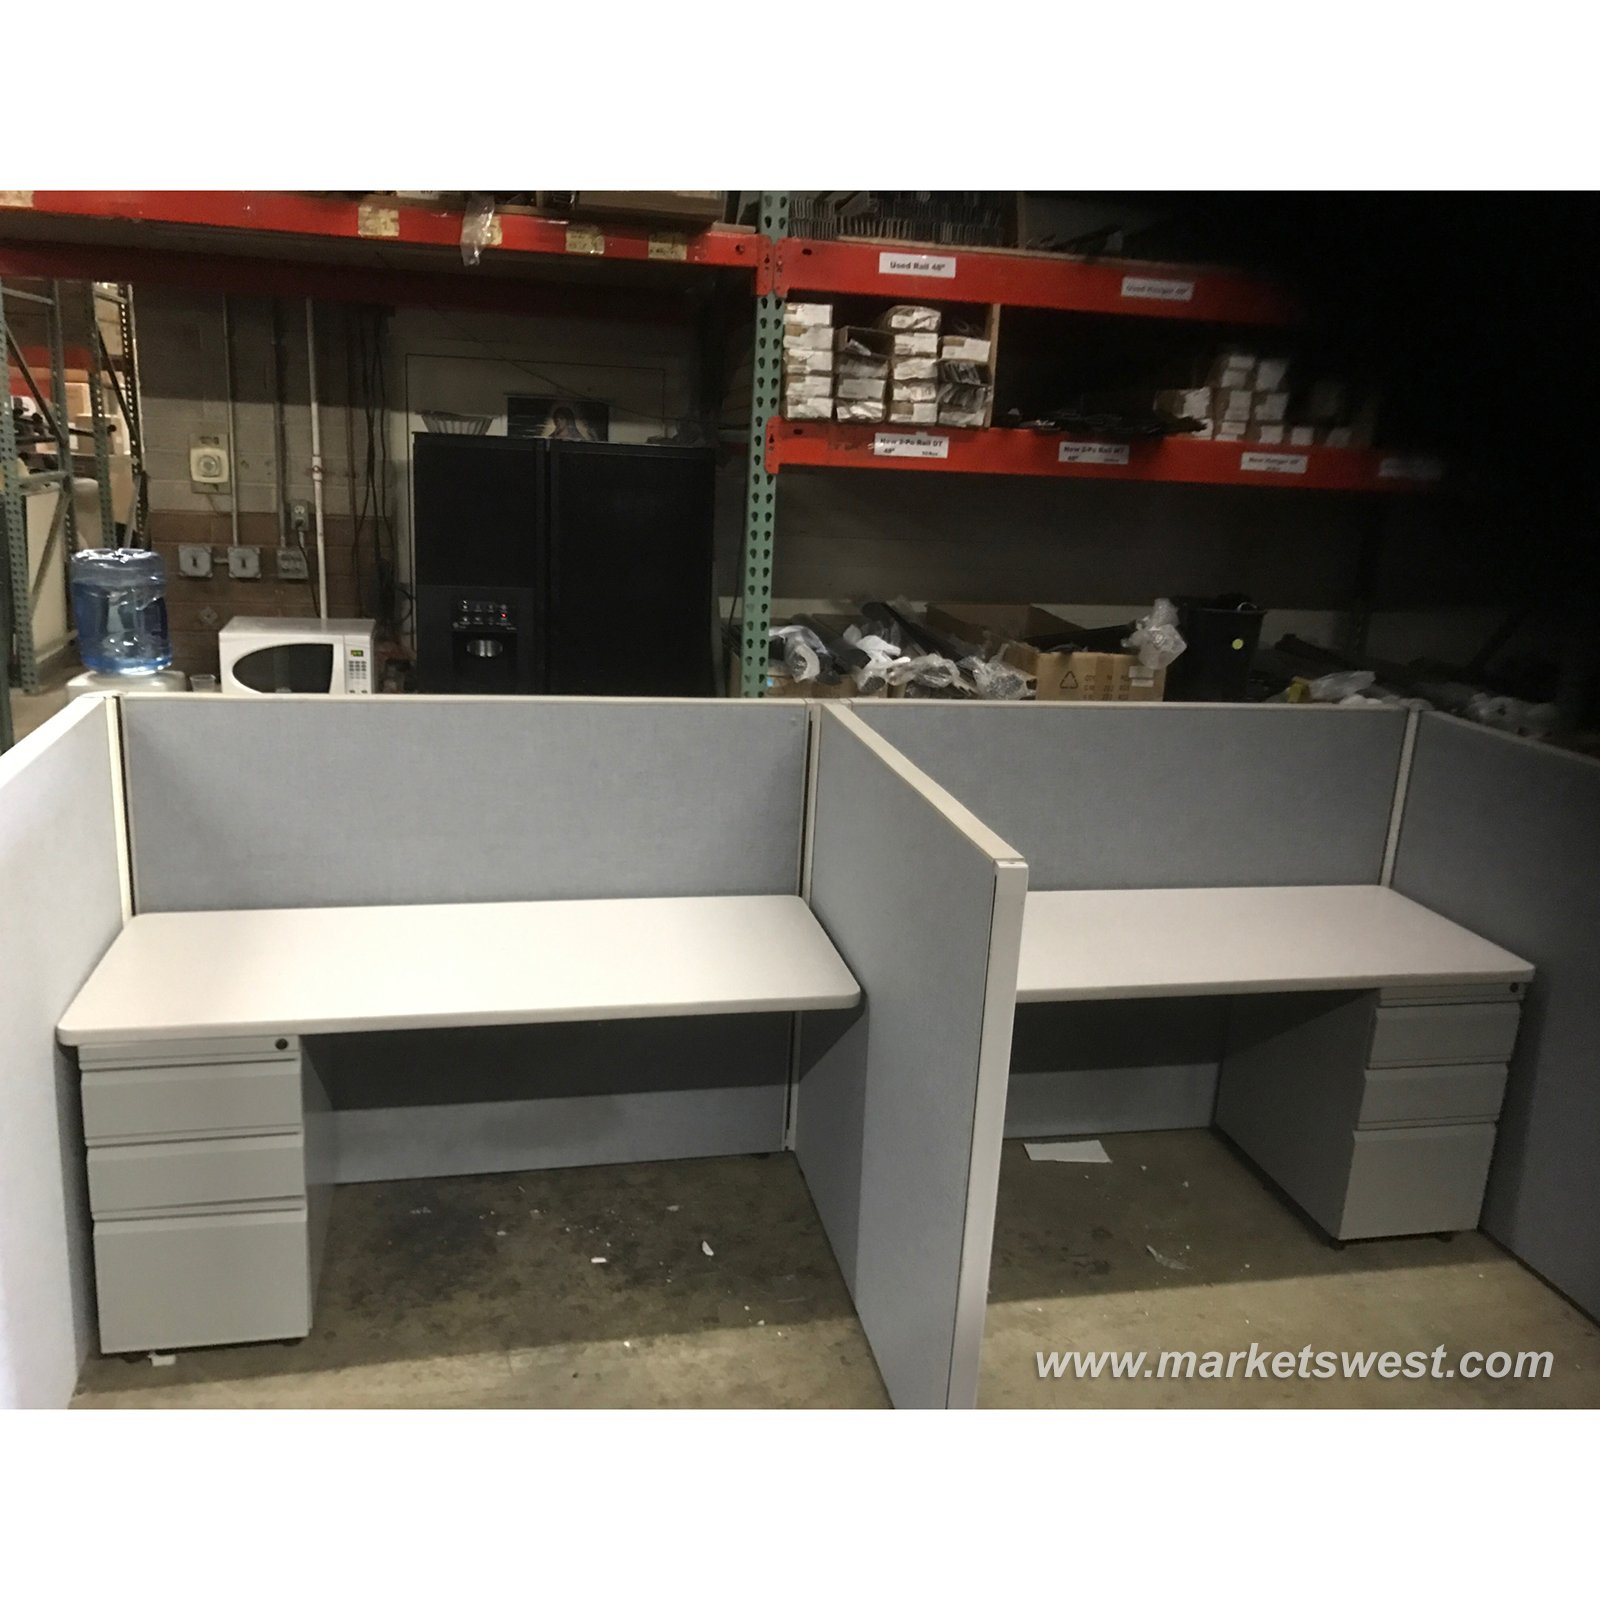 Herman Miller 4 X5 Cubicles Telemarketing Stations Used